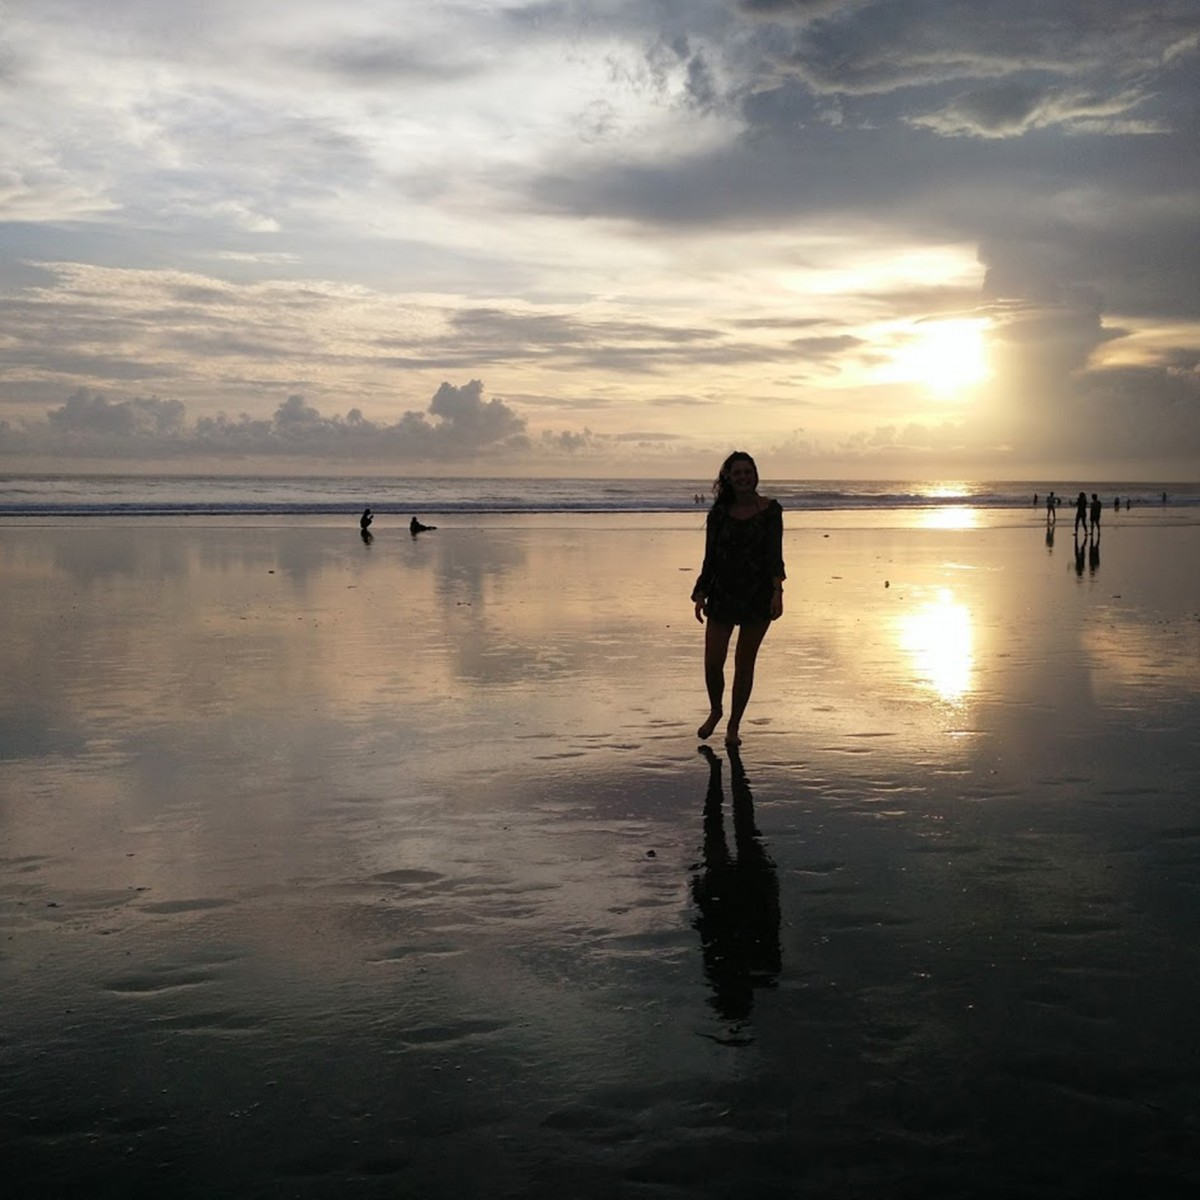 girl_horizon_beach_sunset_silhouette_sunshine_bali_indonesia-552329.jpg!d